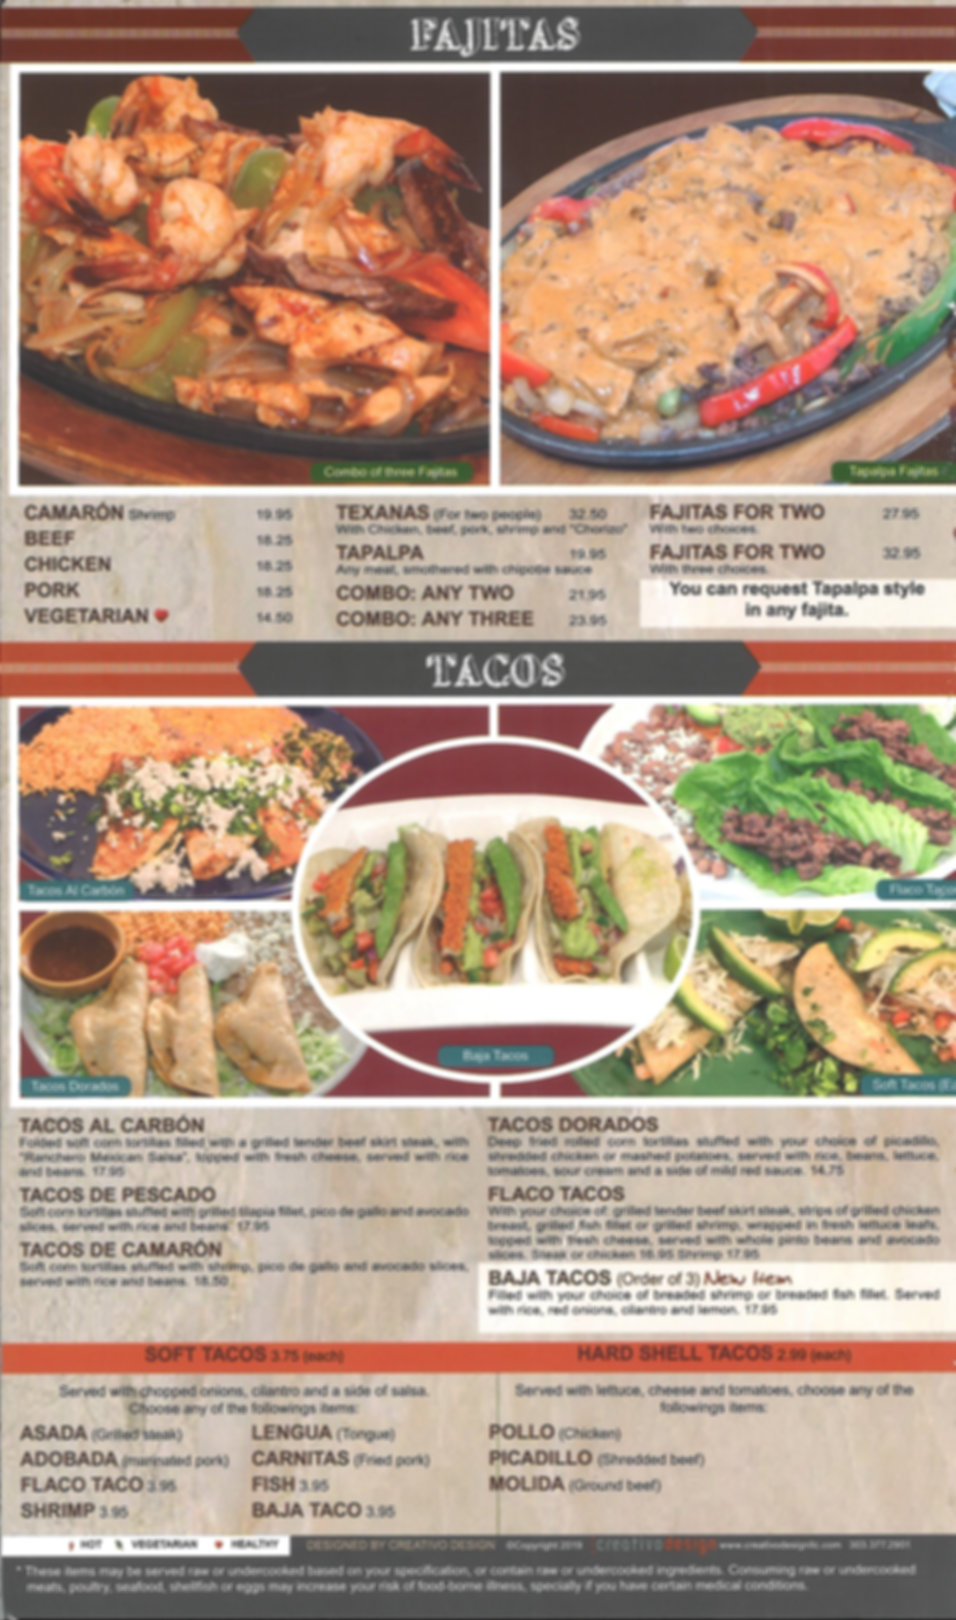 Hacienda Real Menu_Fajitas